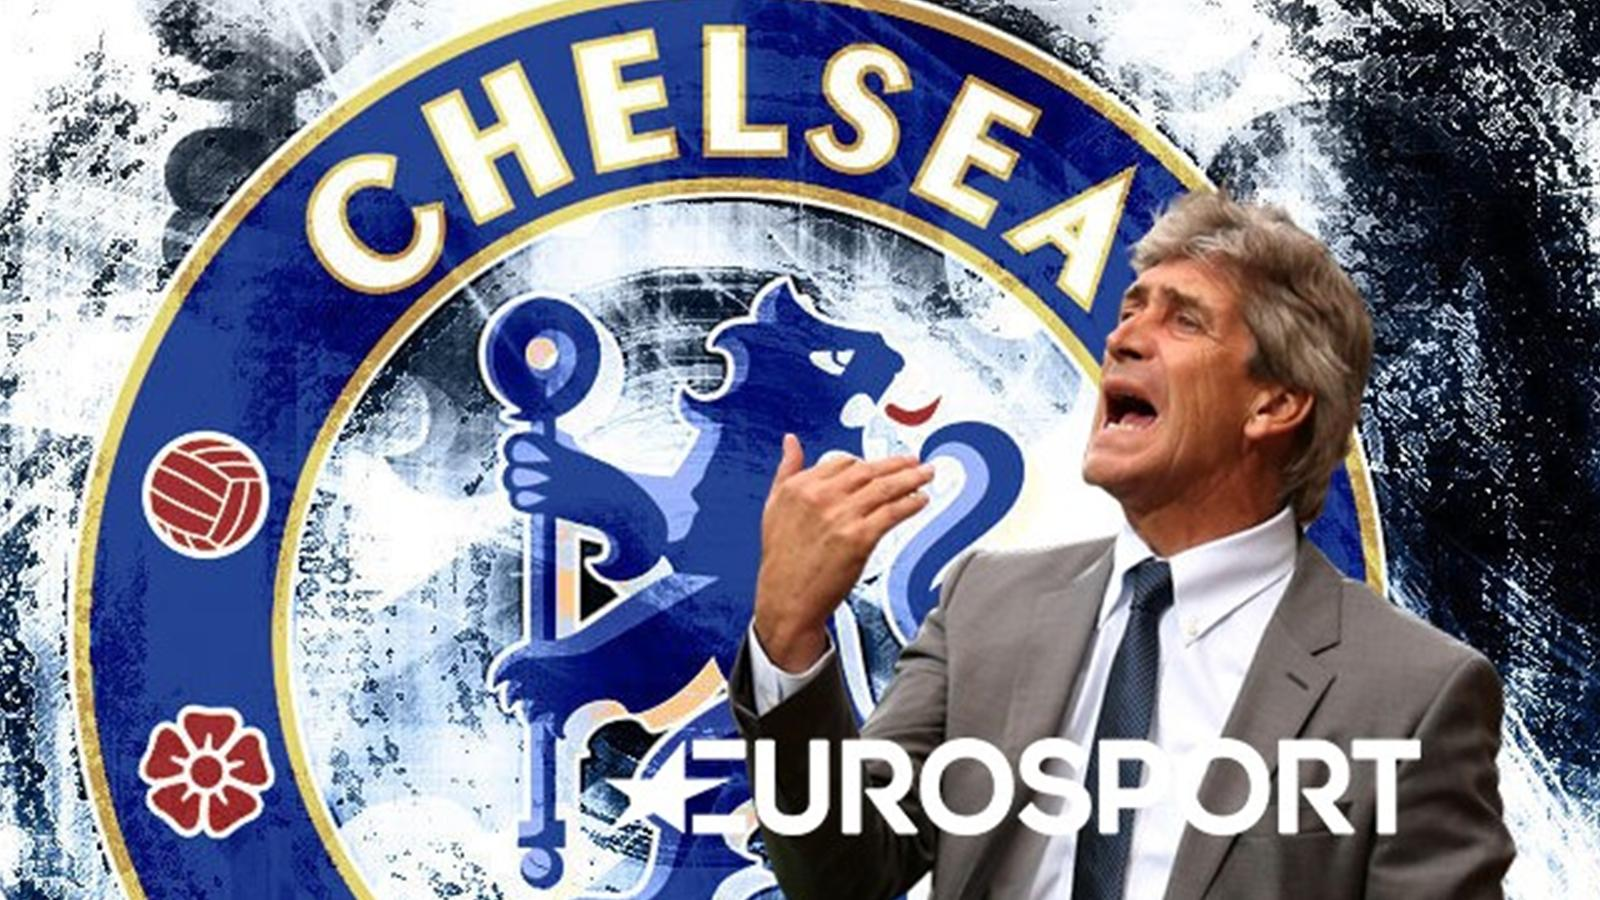 Pellgrini 'likely' to become new manager of Chelsea - Euro Papers